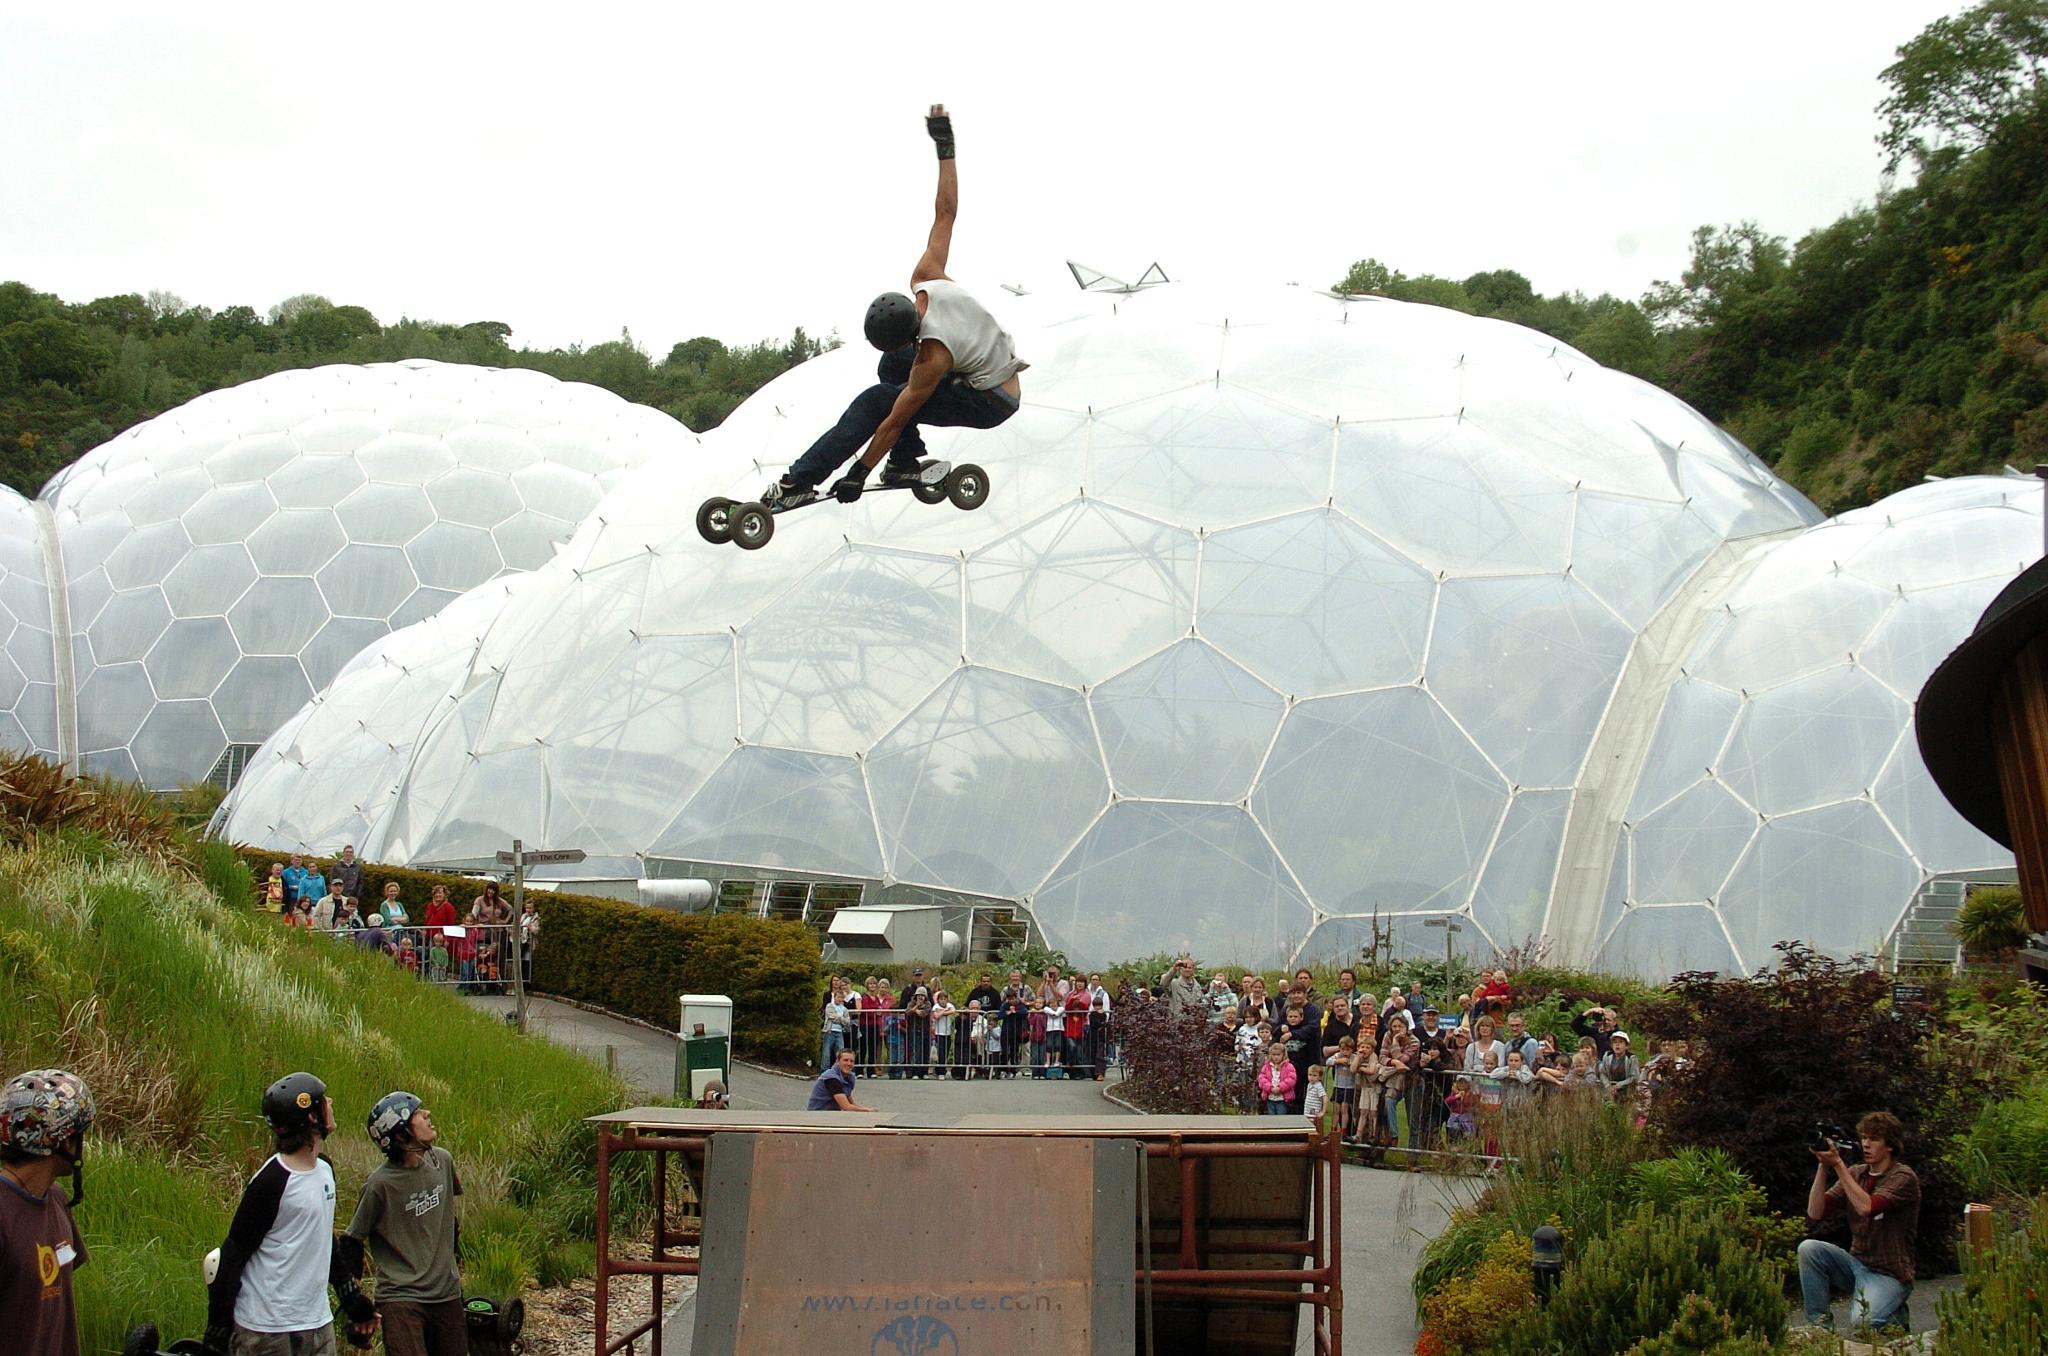 Spinning at the Eden Project by Paul.Taylor